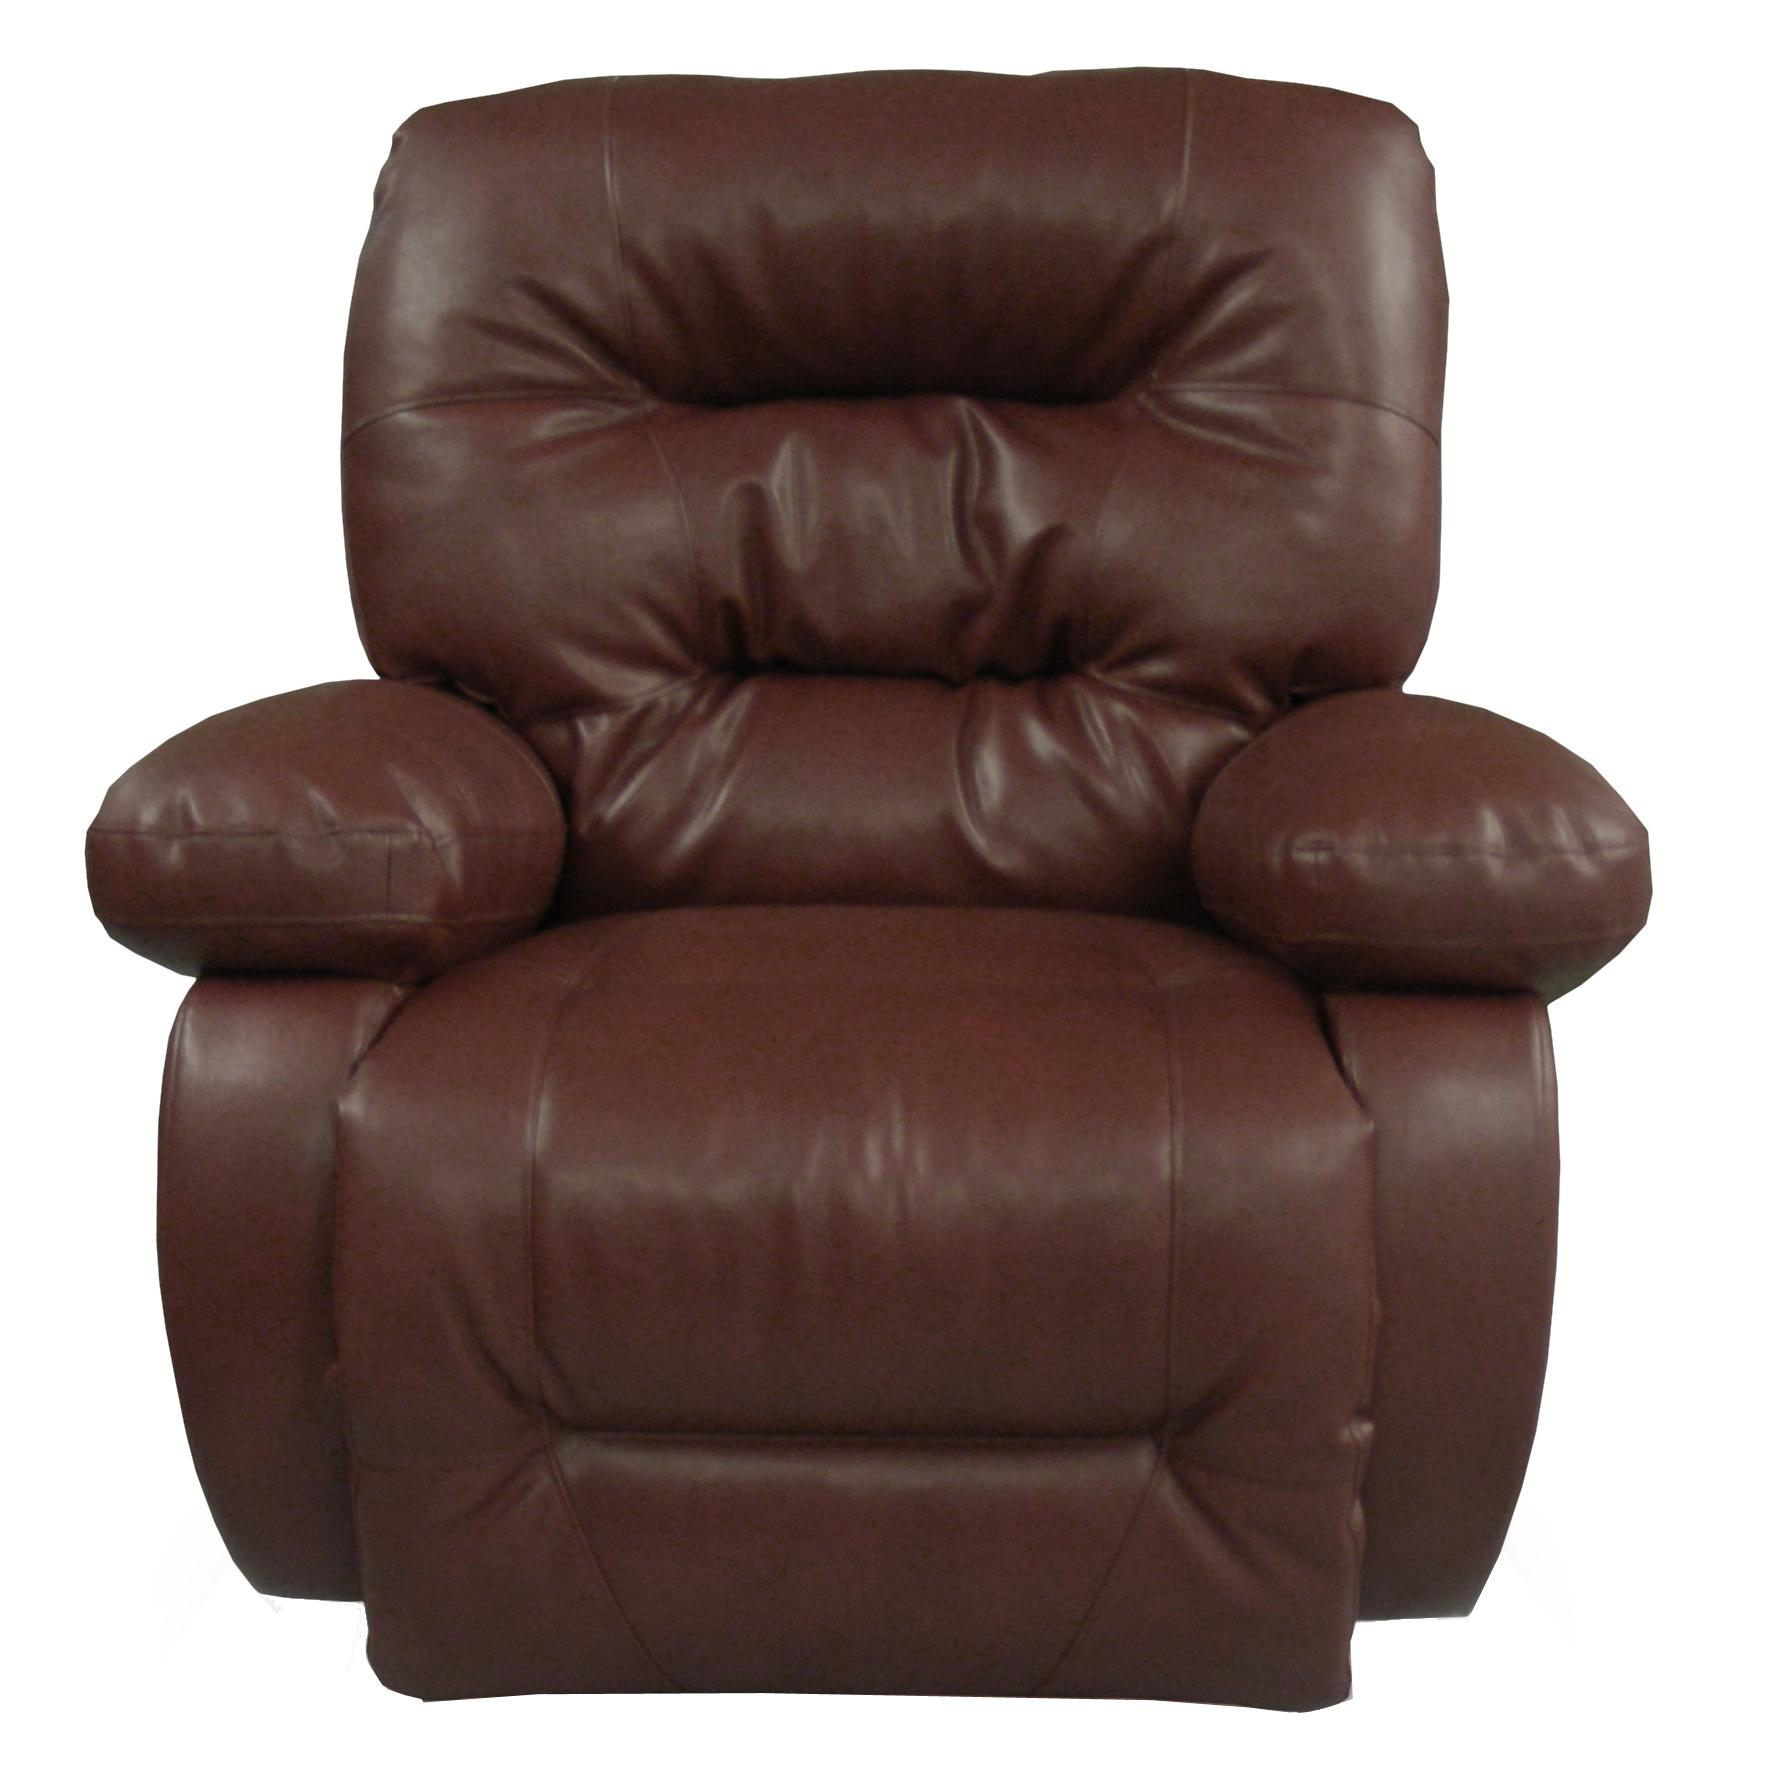 Medium Recliners Maddox Space Saver Recliner by Best Home Furnishings at Lagniappe Home Store